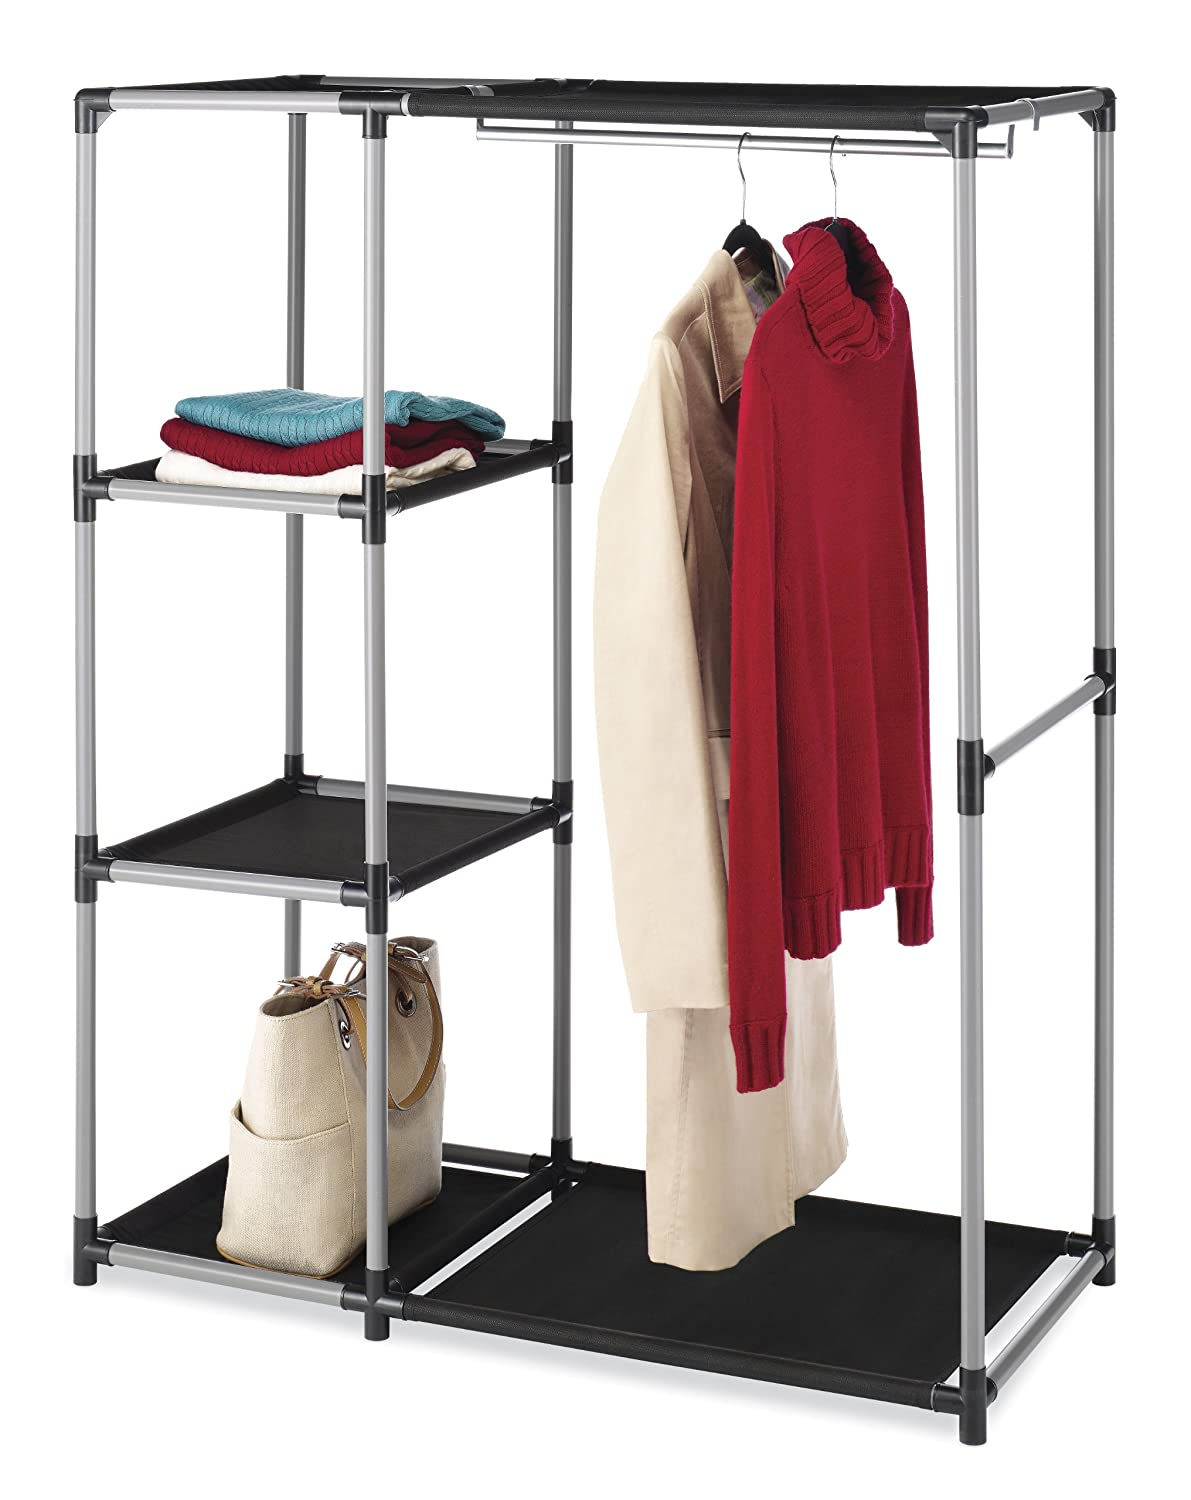 Amazon.com: Whitmor 6170 4297 Spacemaker Garment Rack And Shelves: Home U0026  Kitchen